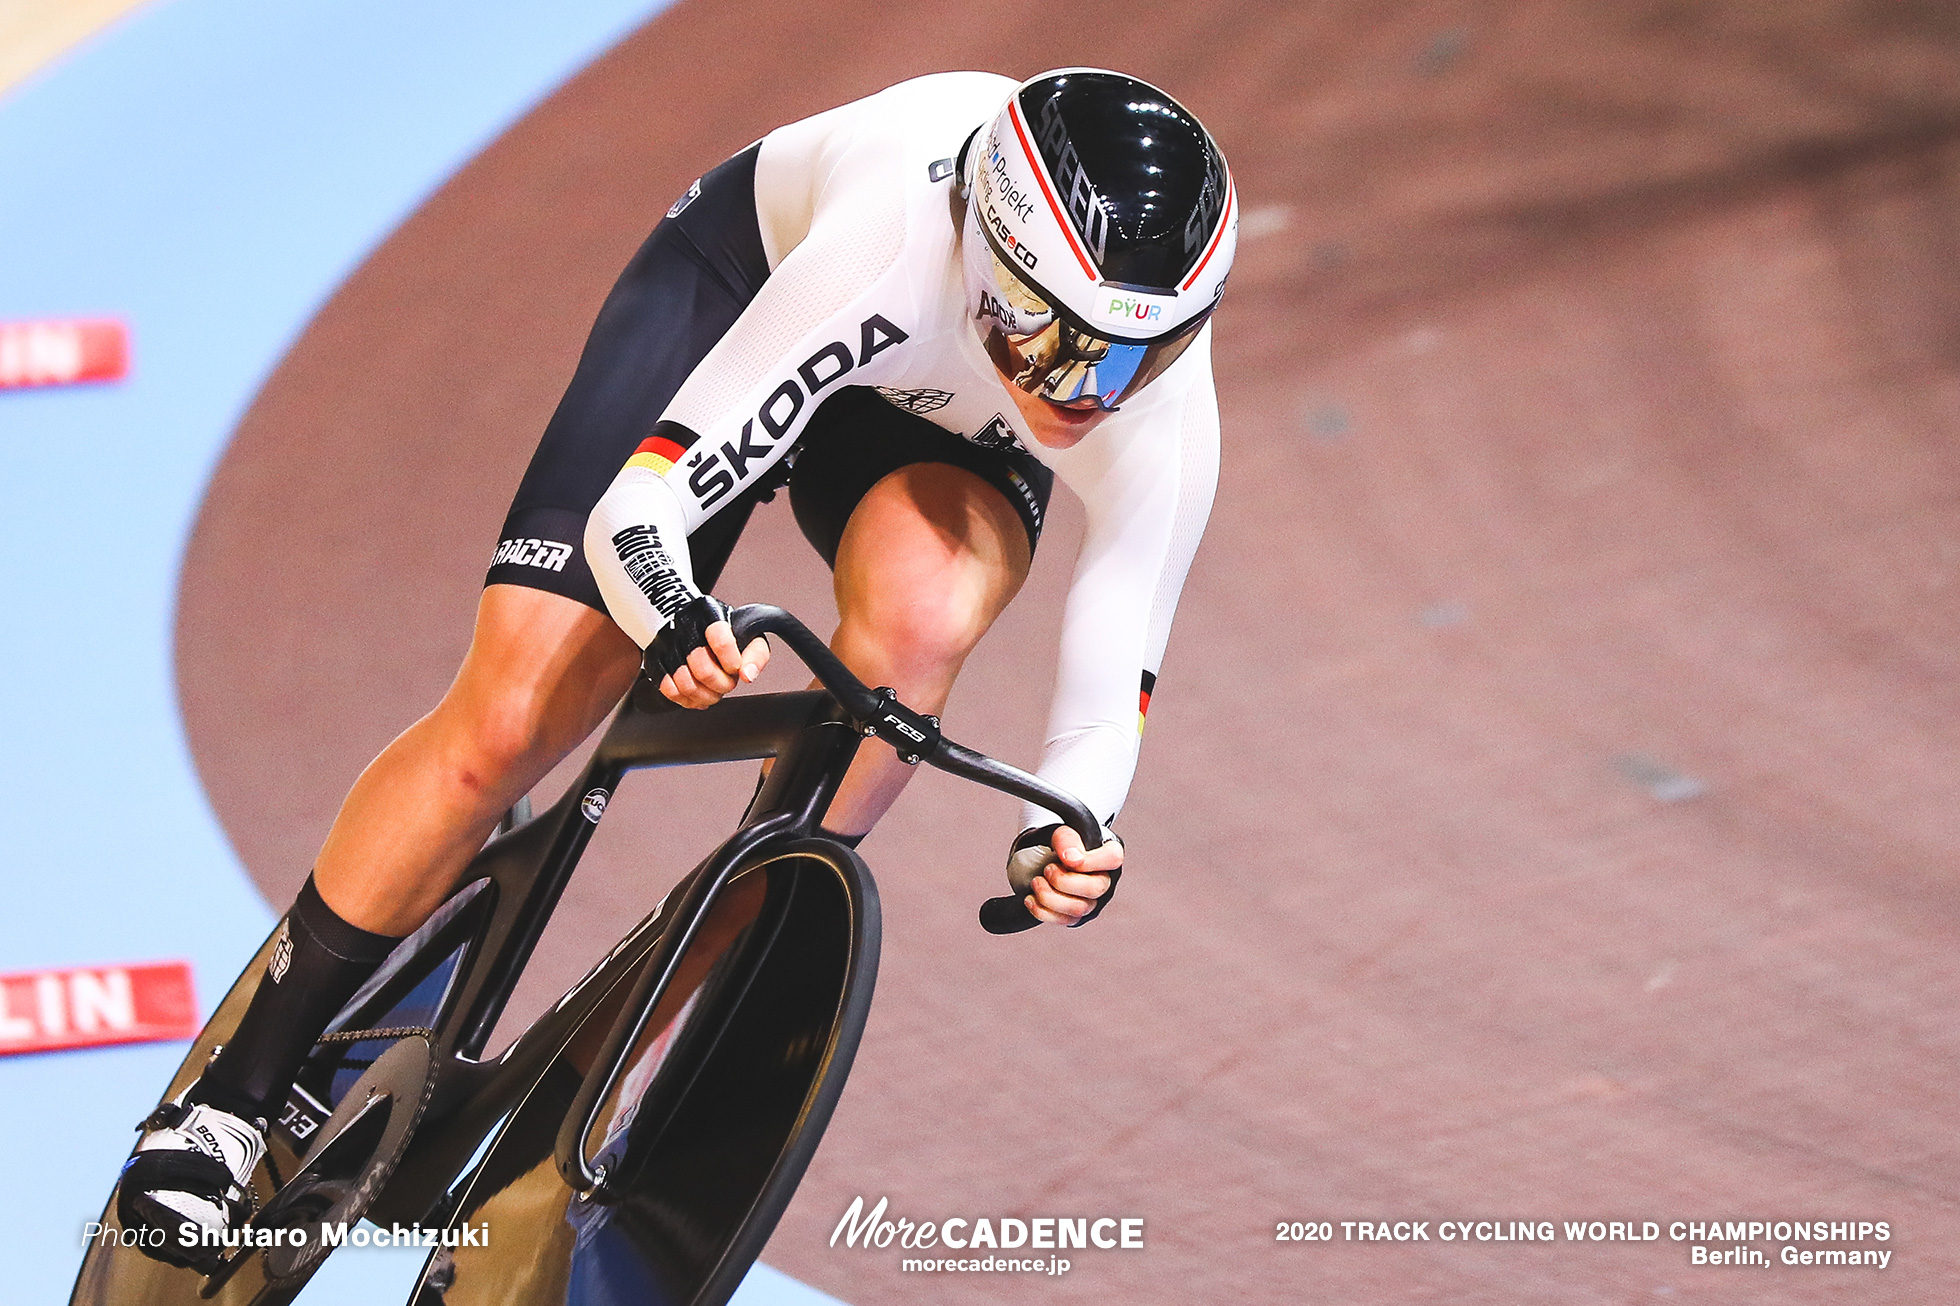 Qualifying / Women's Sprint / 2020 Track Cycling World Championships